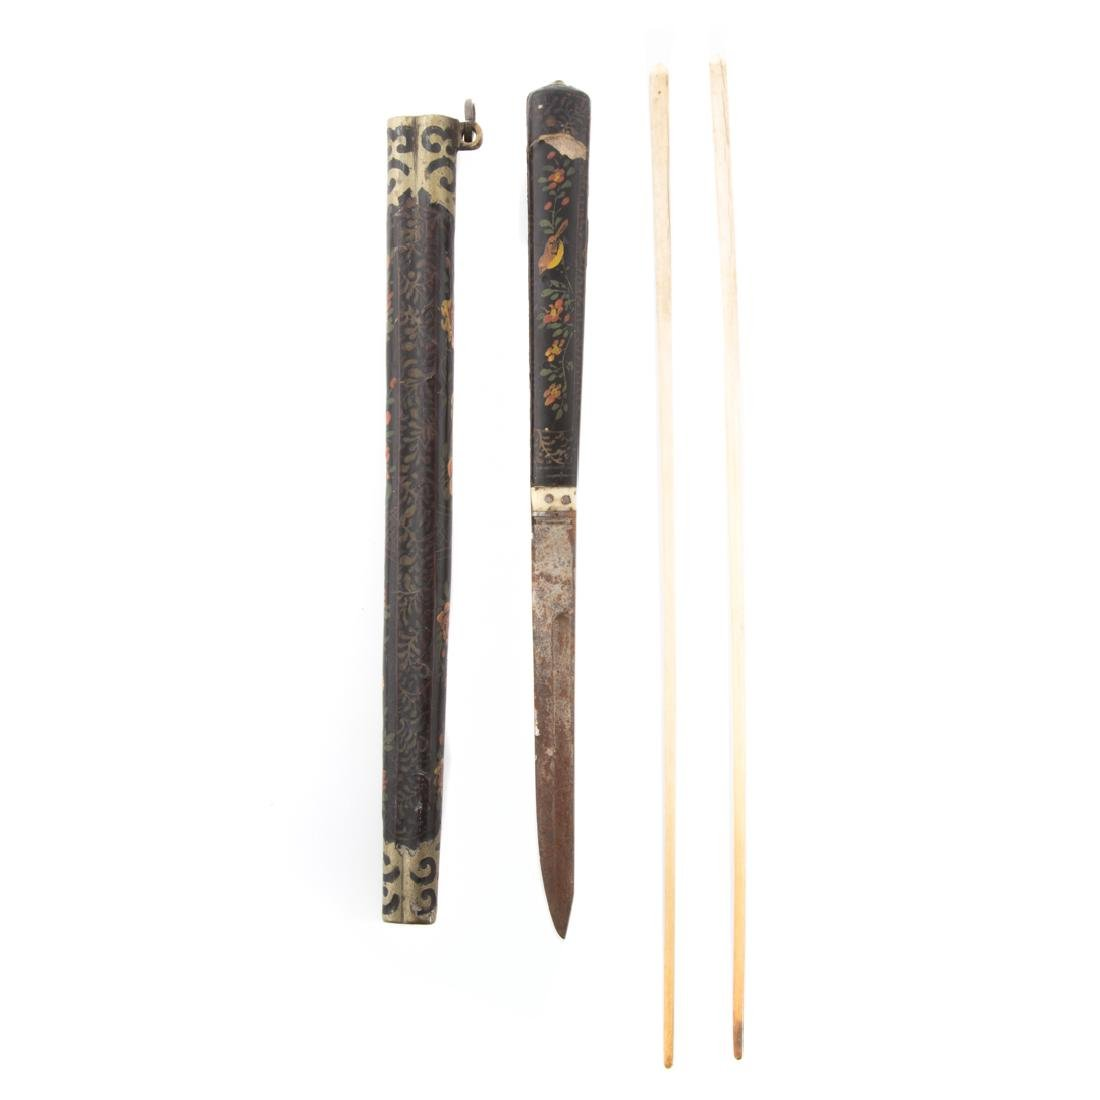 Two Chinese travel chopstick and knife sets - 2